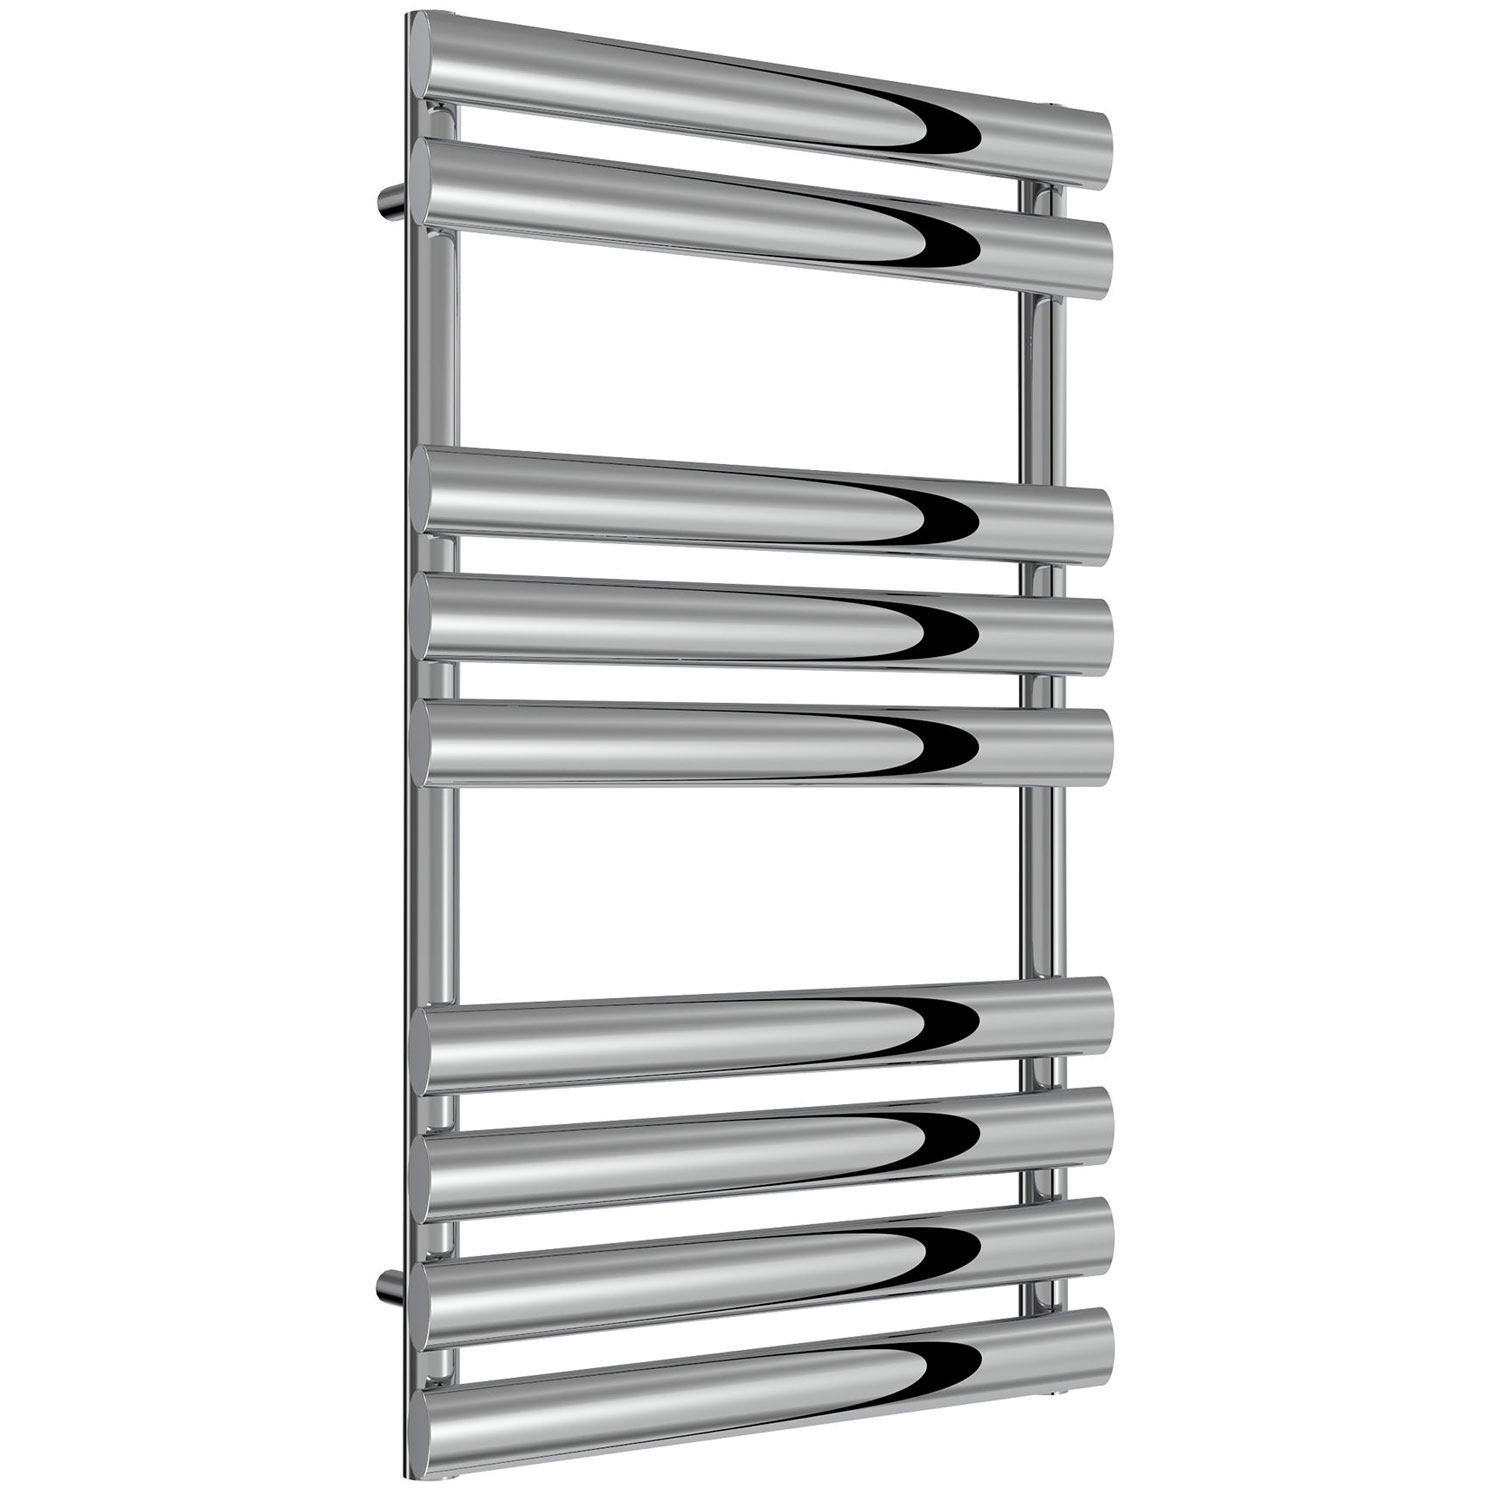 Reina Arbori Designer Heated Towel Rail 1510mm H x 500mm W Chrome